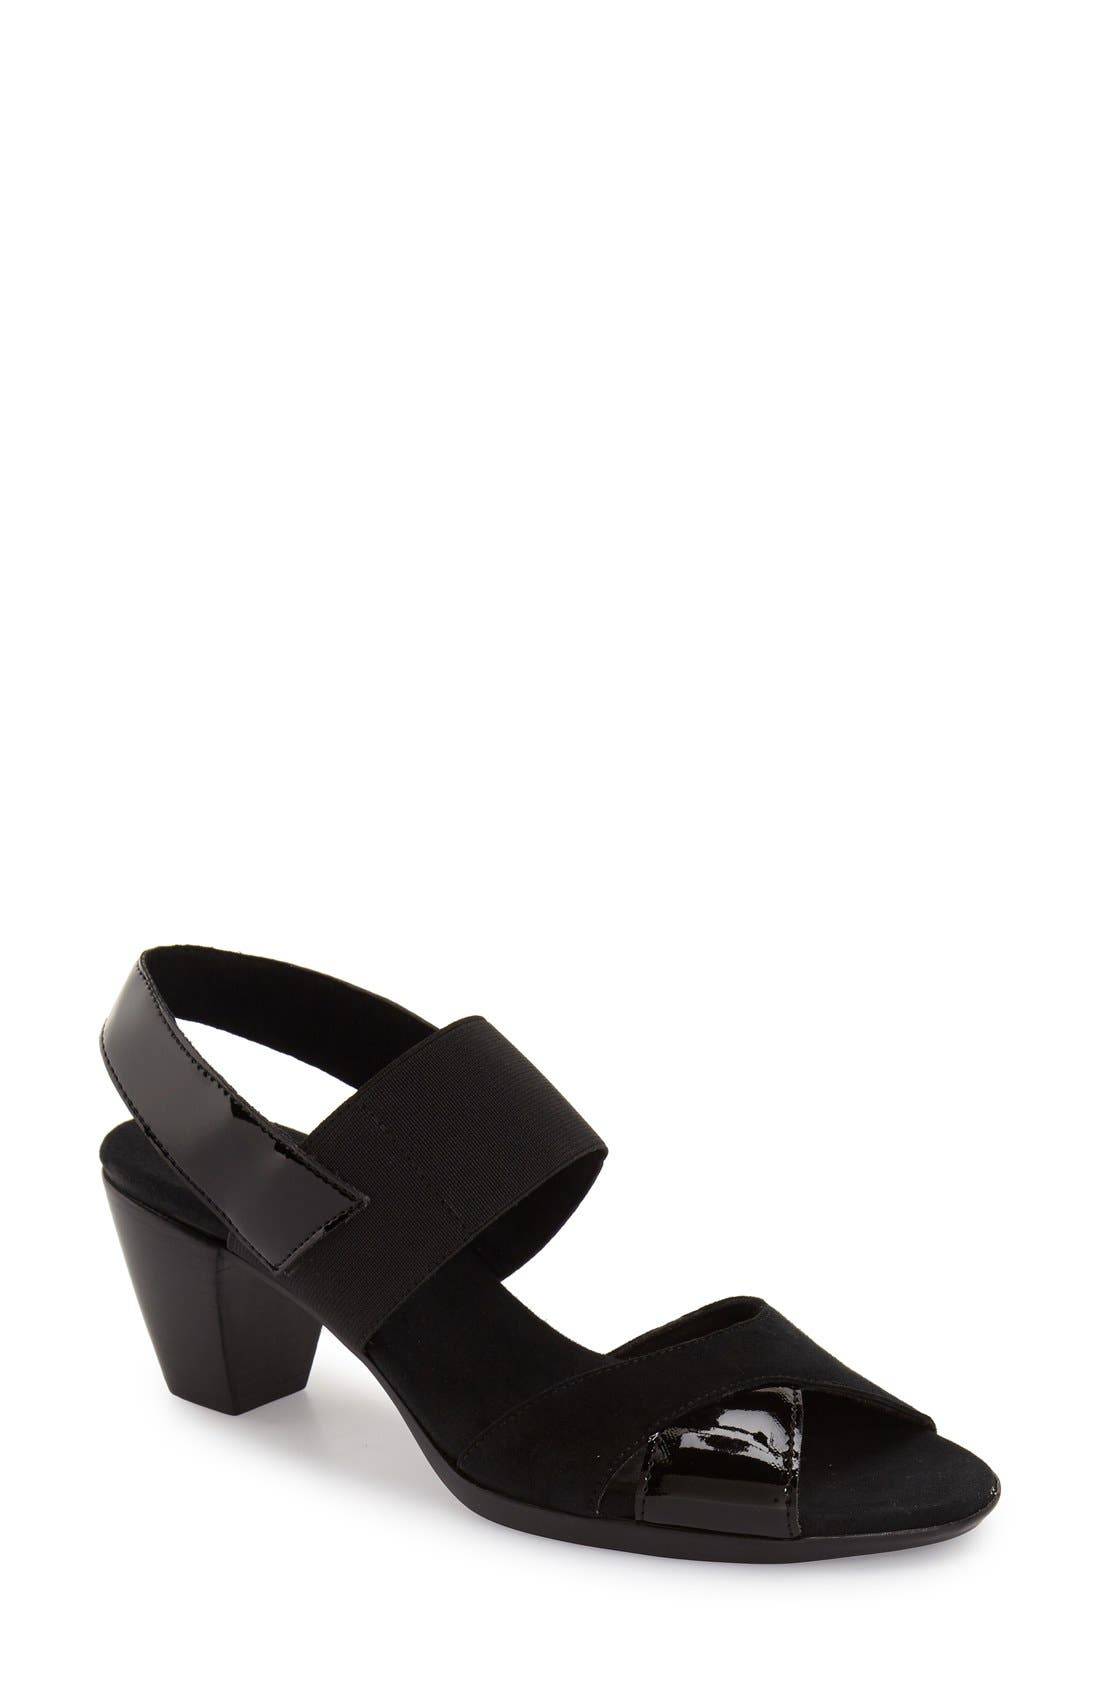 Alternate Image 1 Selected - Munro Darling Mixed Finish Slingback Sandal (Women)